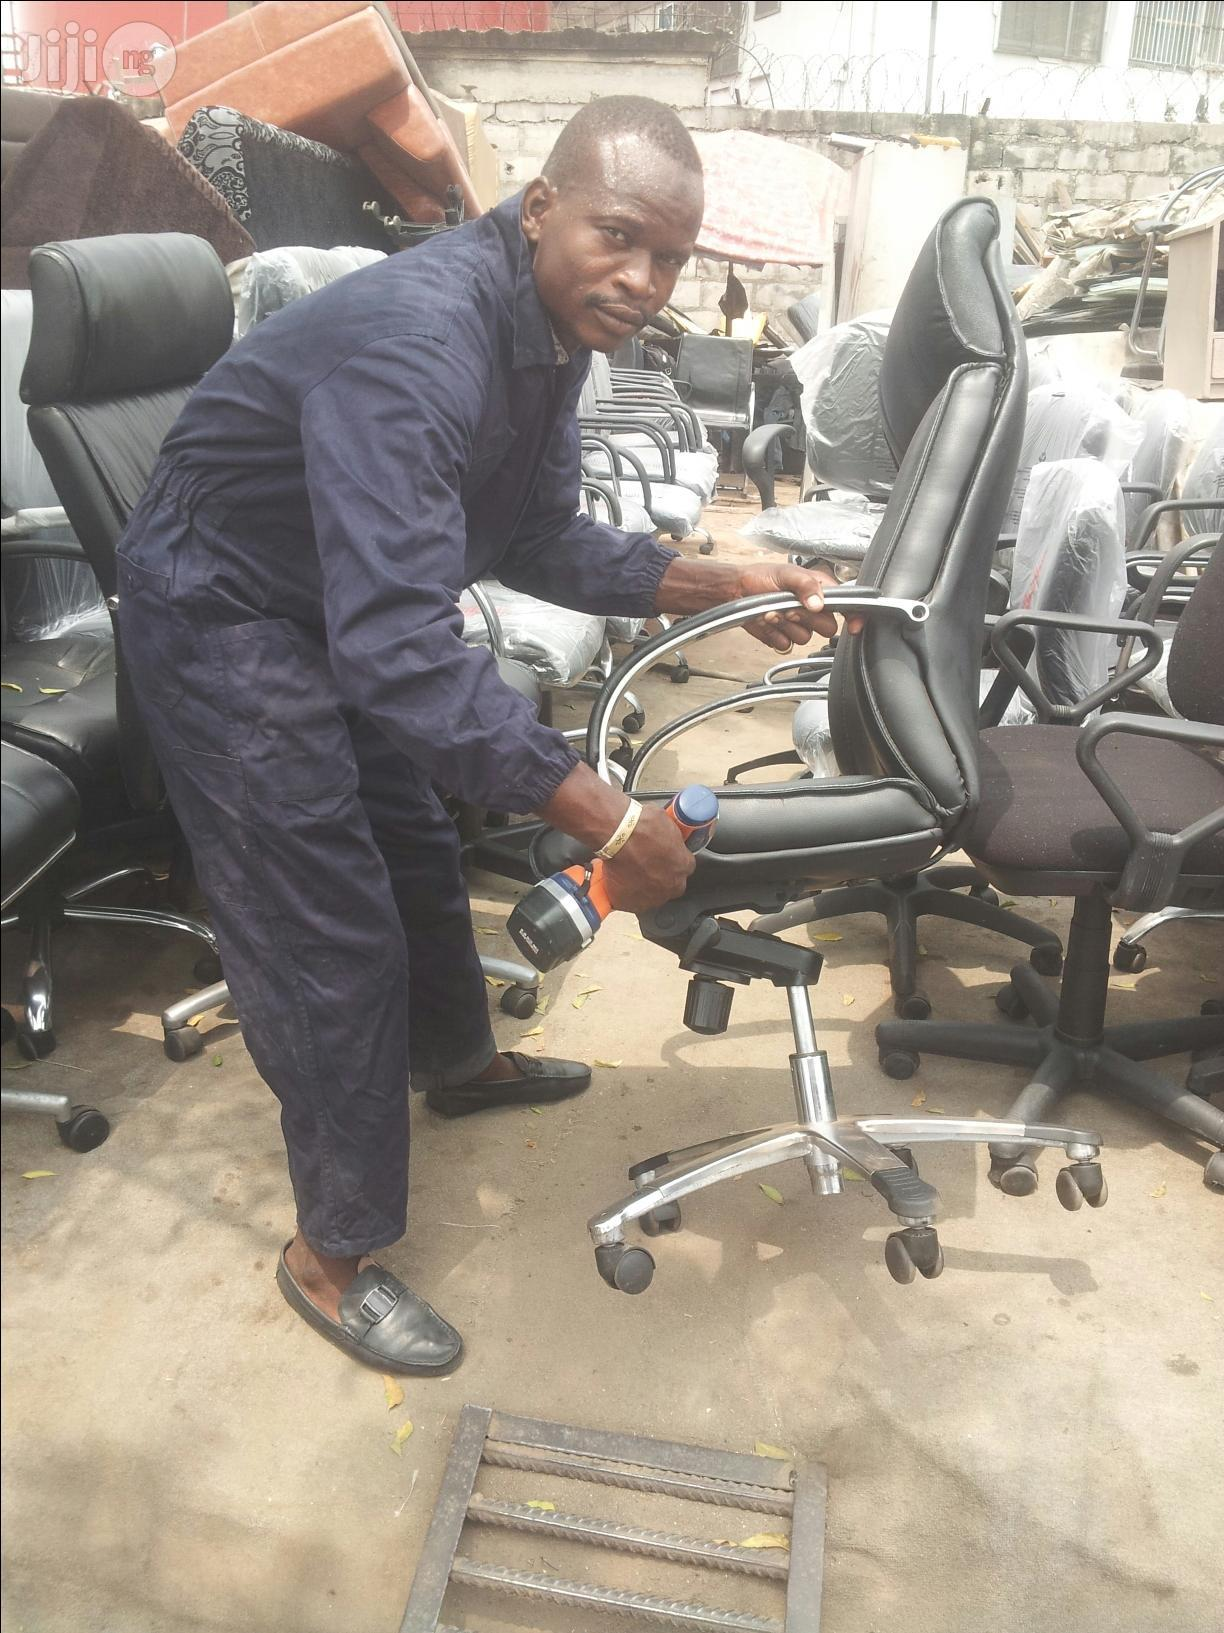 Repair Your Office Chair And Table And All Kinds Of Office Equipment